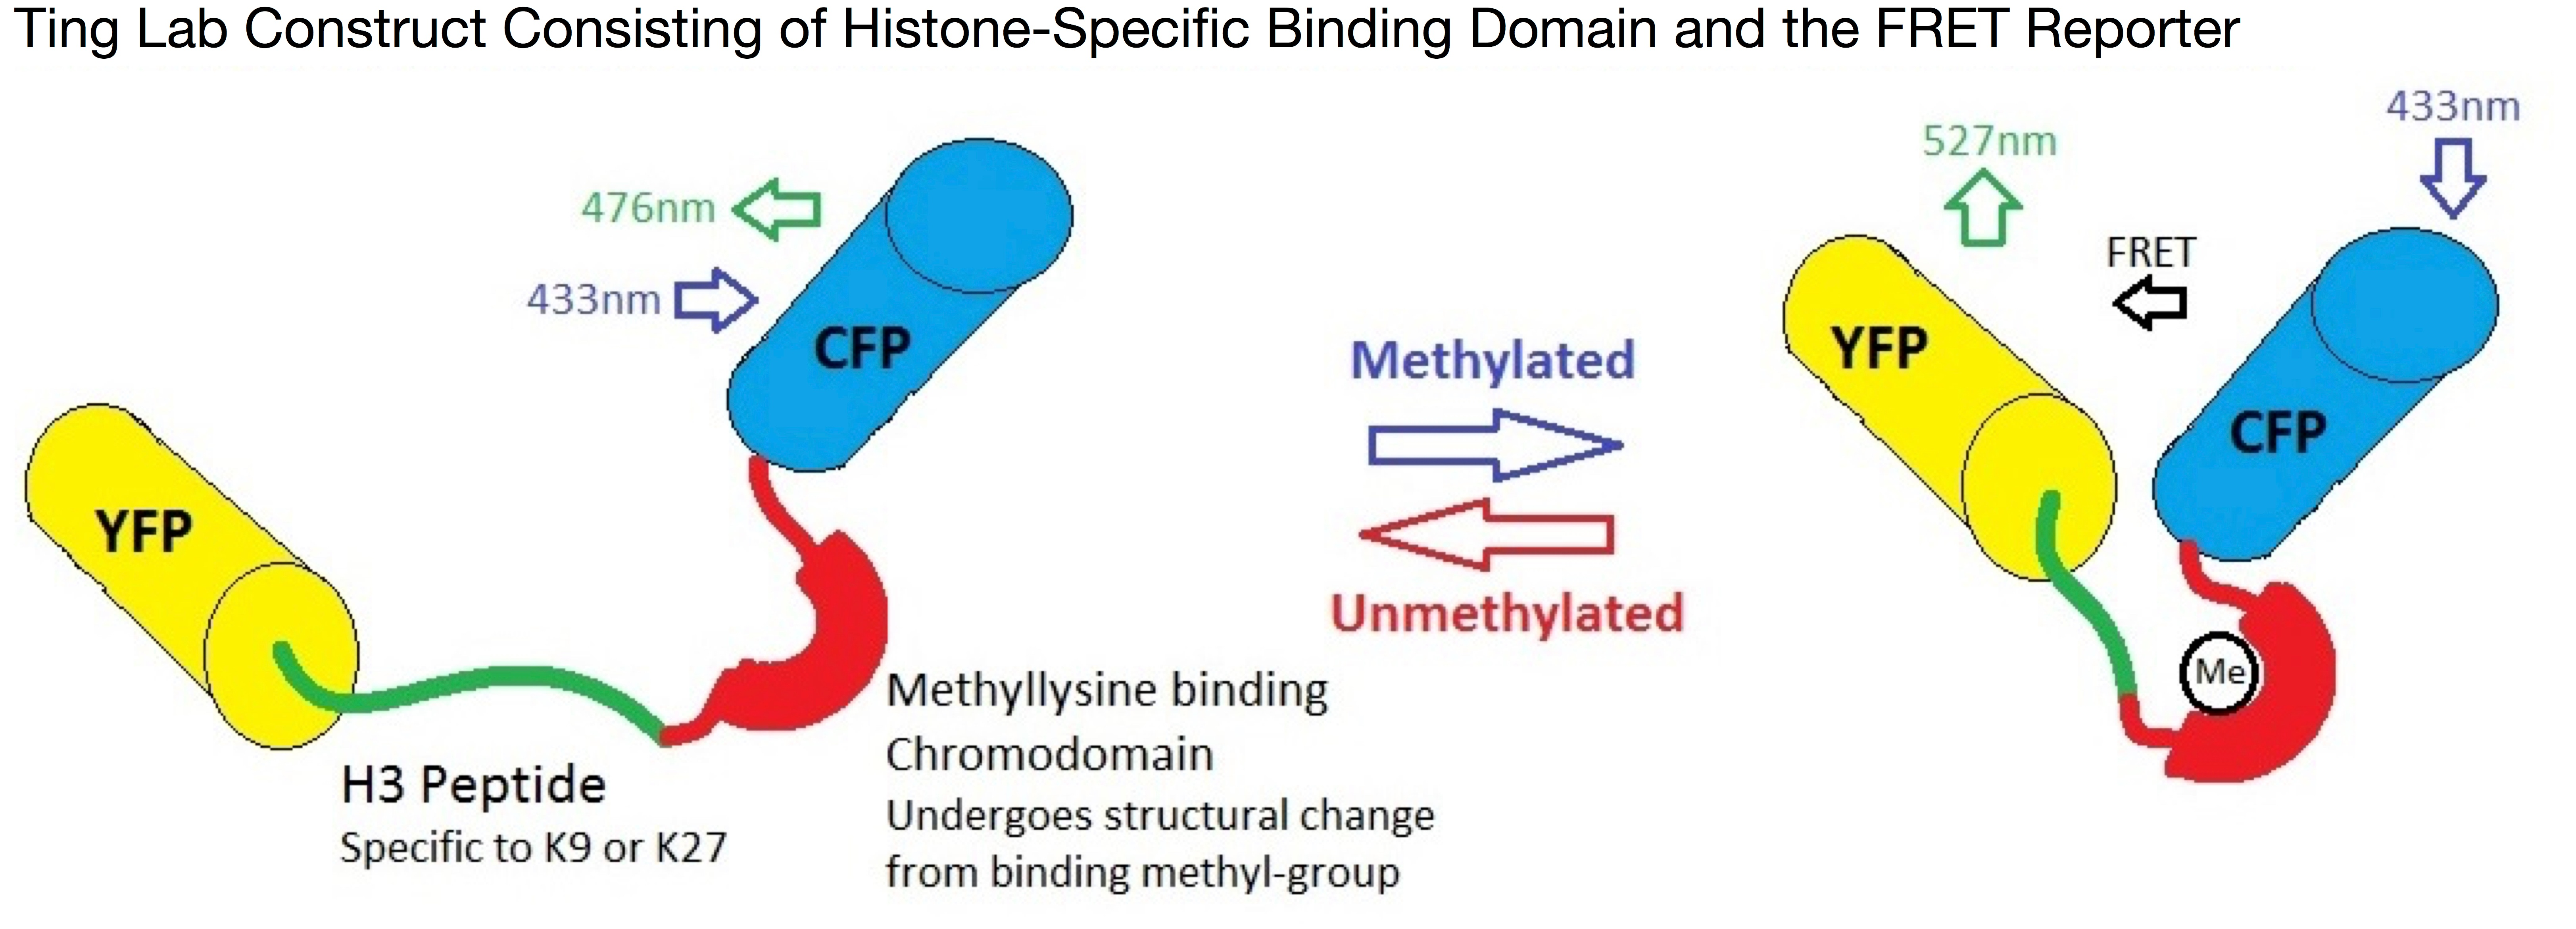 Ting lab FRET based biosensor for histone modifications